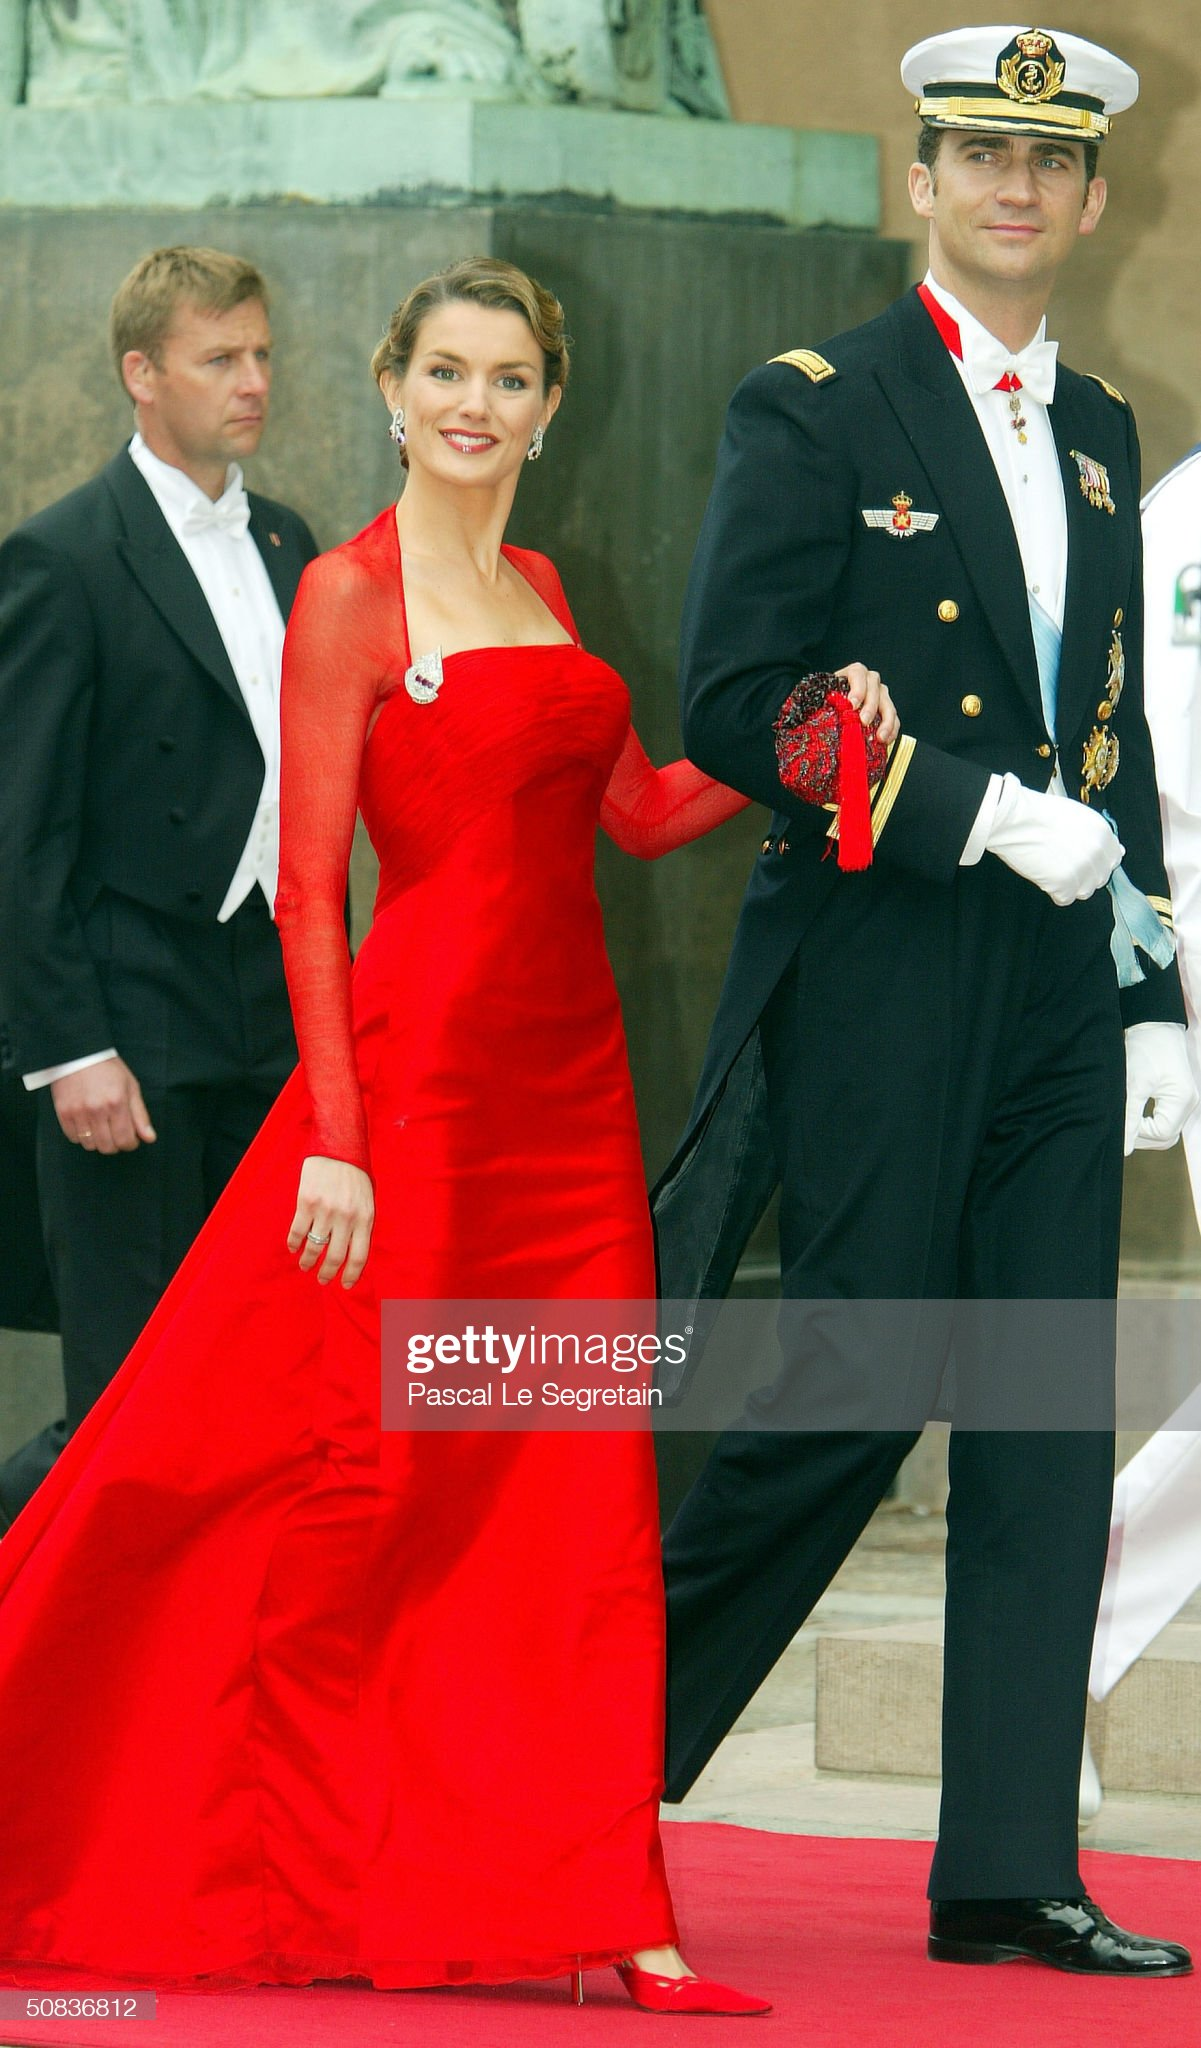 DK Wedding Of Danish Crown Prince Frederik and Mary Donaldson : News Photo